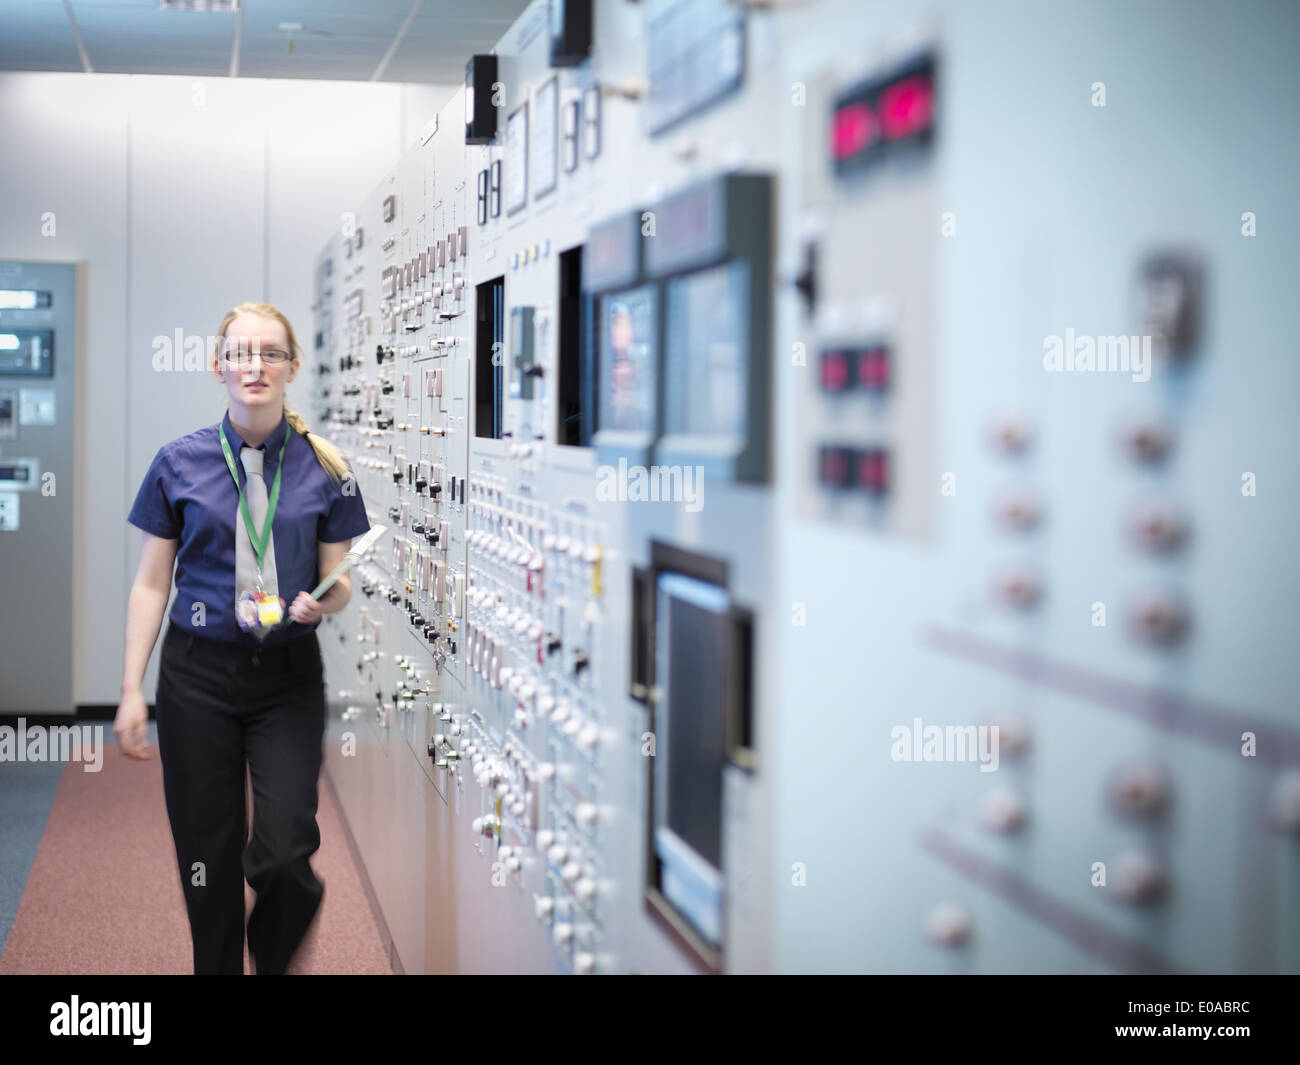 Female engineer in nuclear power station control room simulator - Stock Image